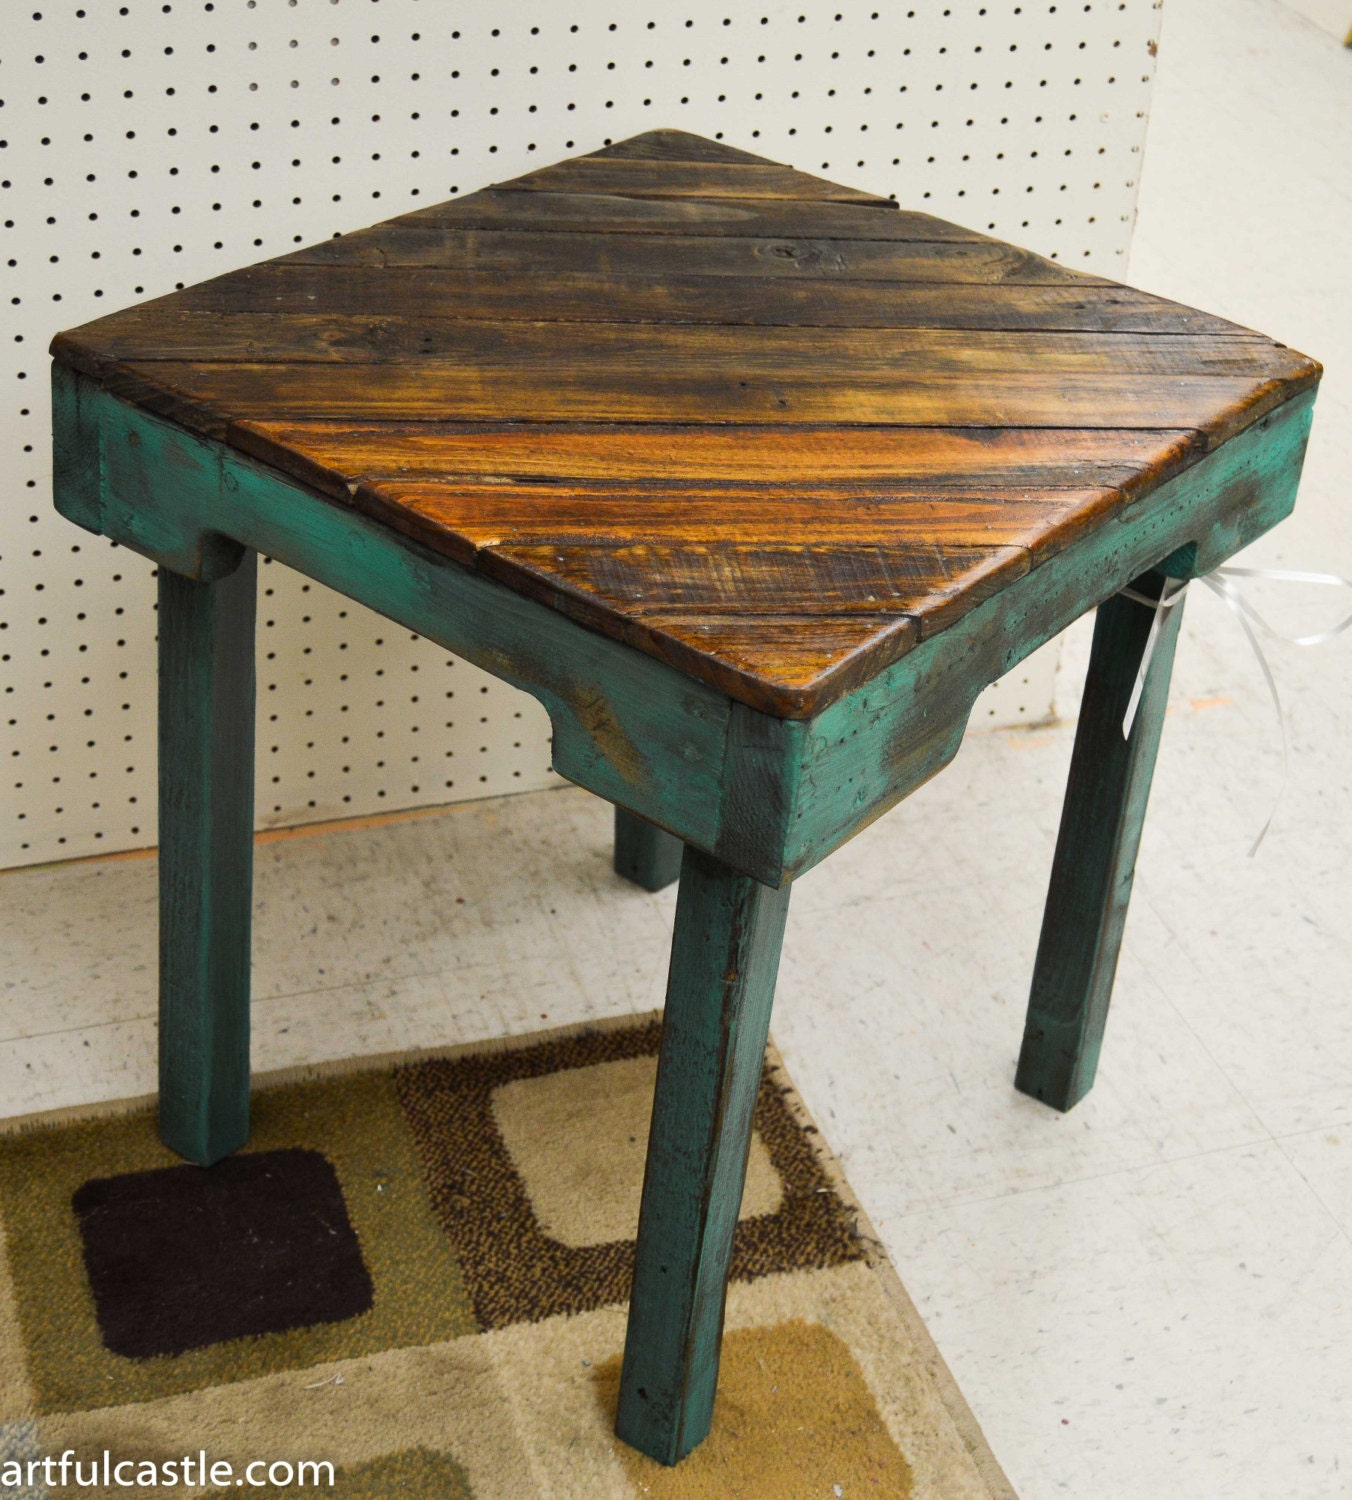 Turquoise Reclaimed Wood Side Table By Artfulcastle On Etsy